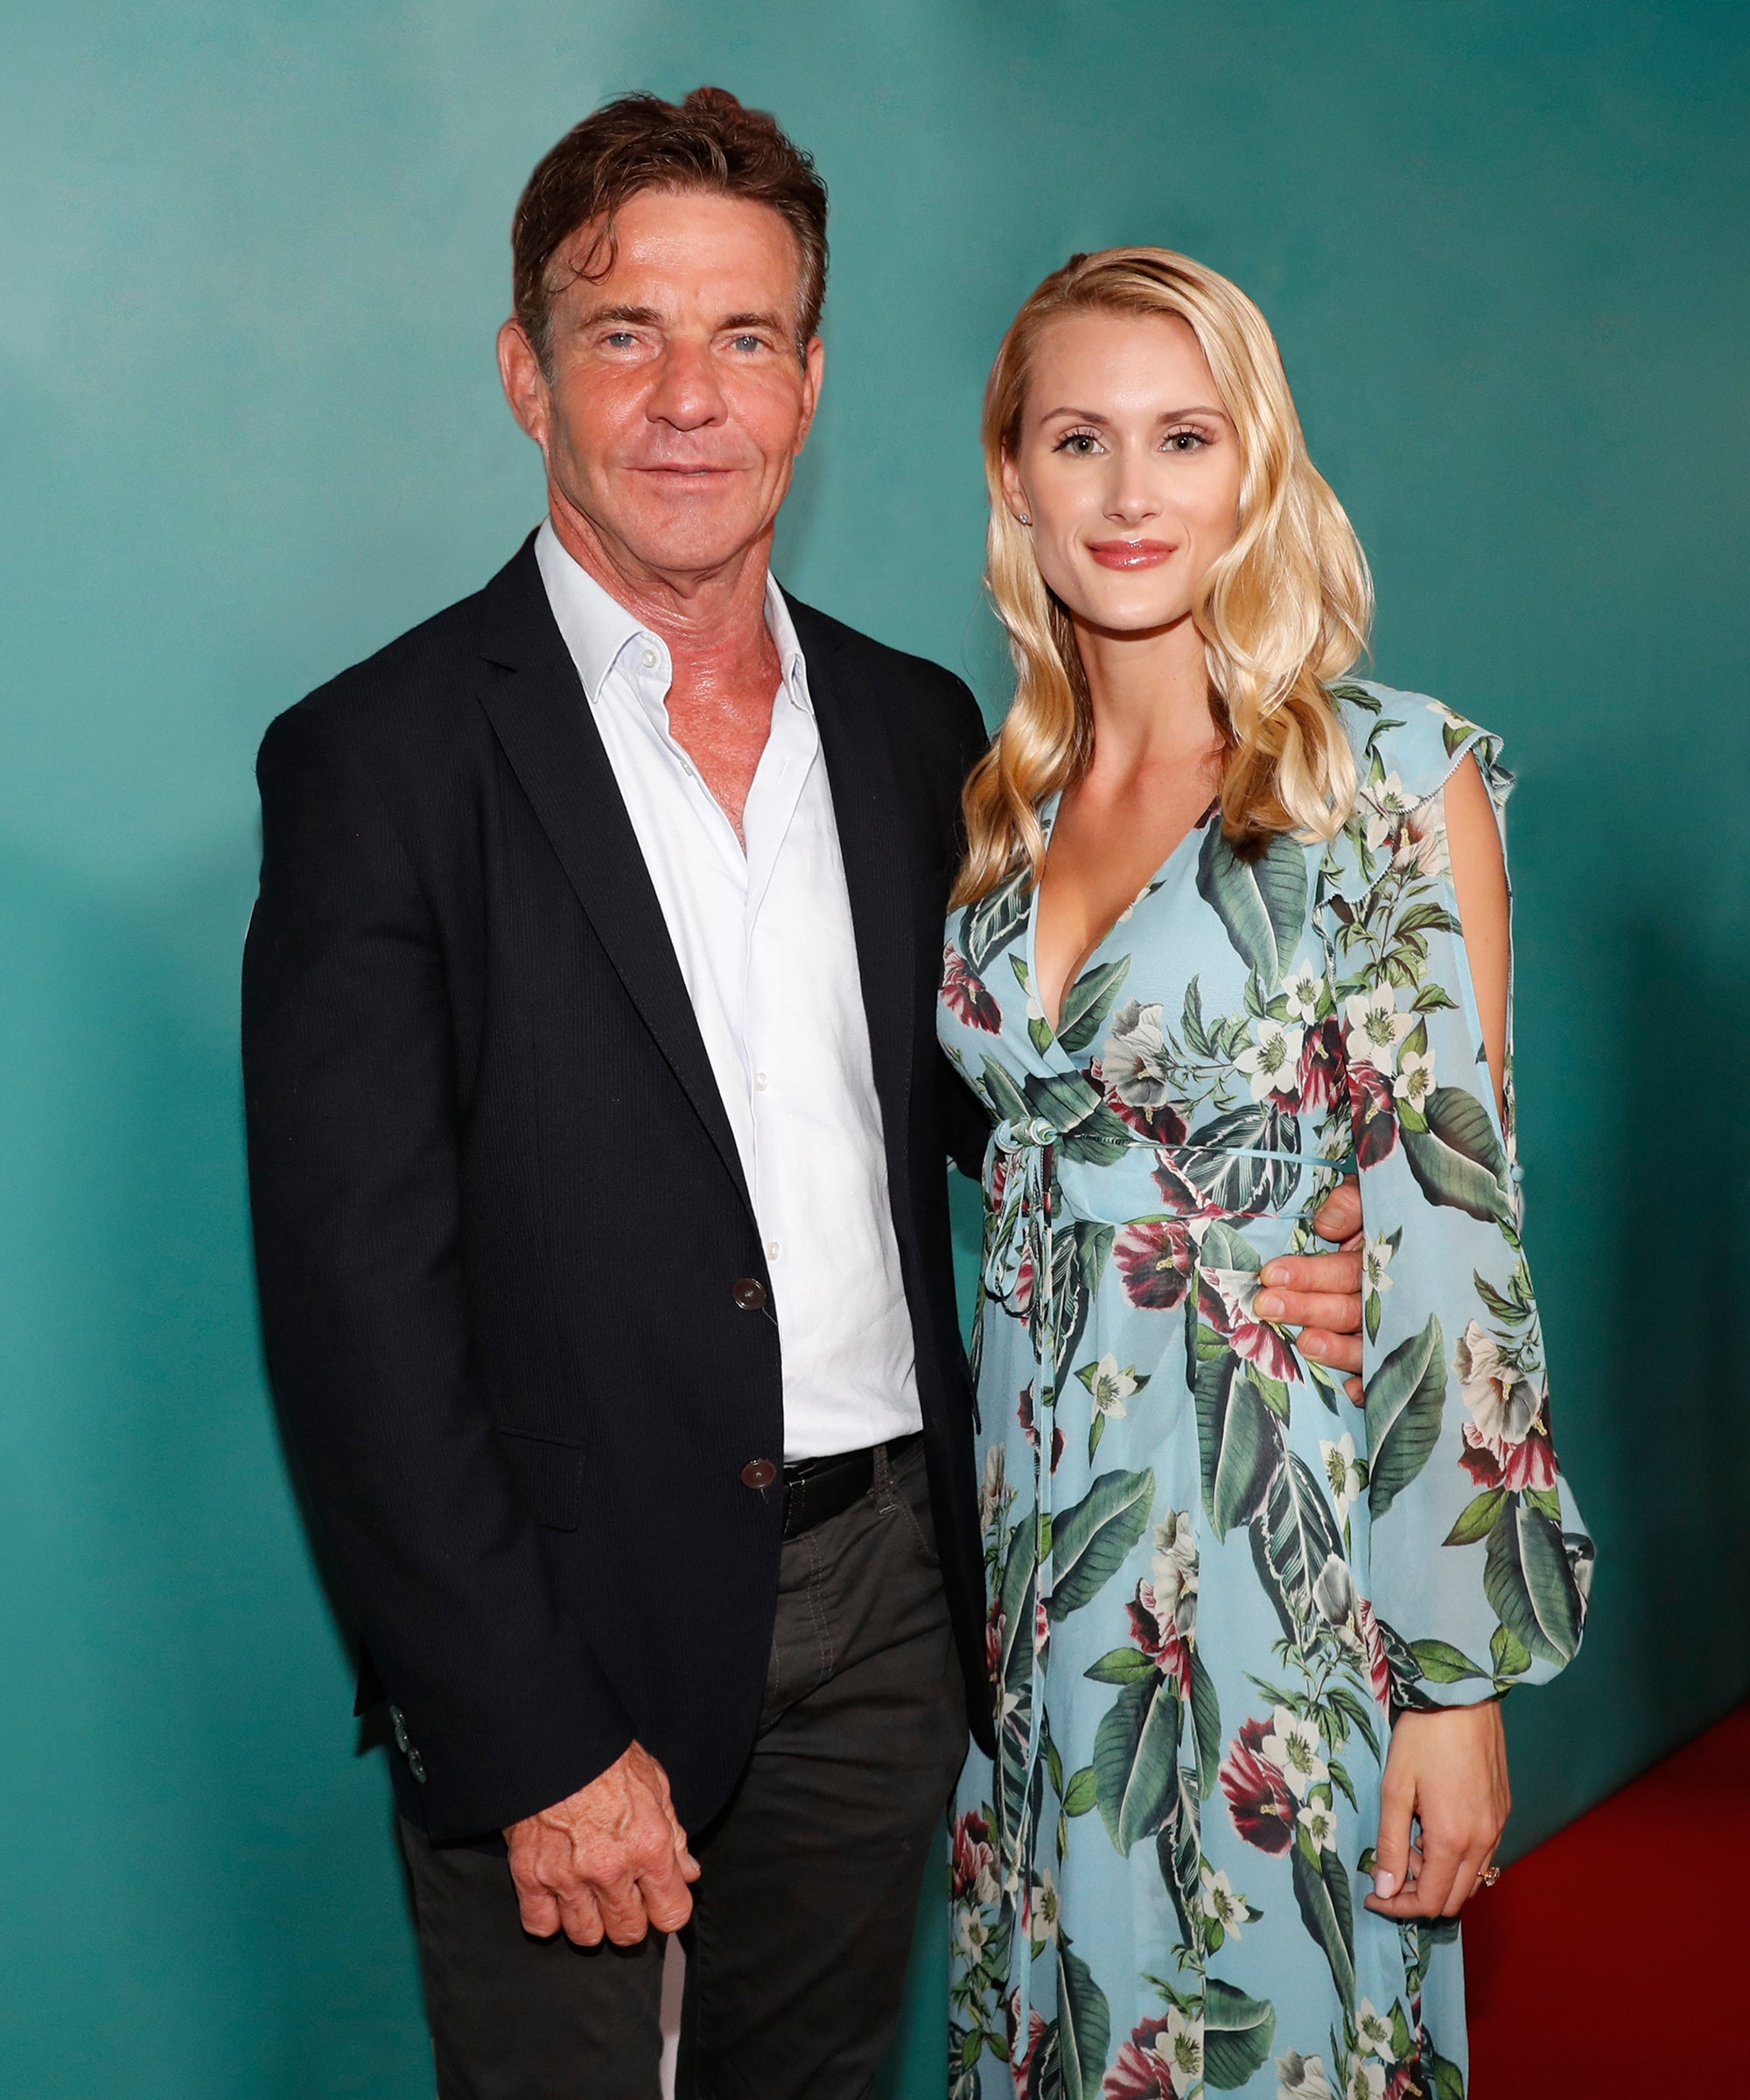 Dennis Quaid's Engagement To His 26-Year-Old Fiancée Is Life Imitating Art